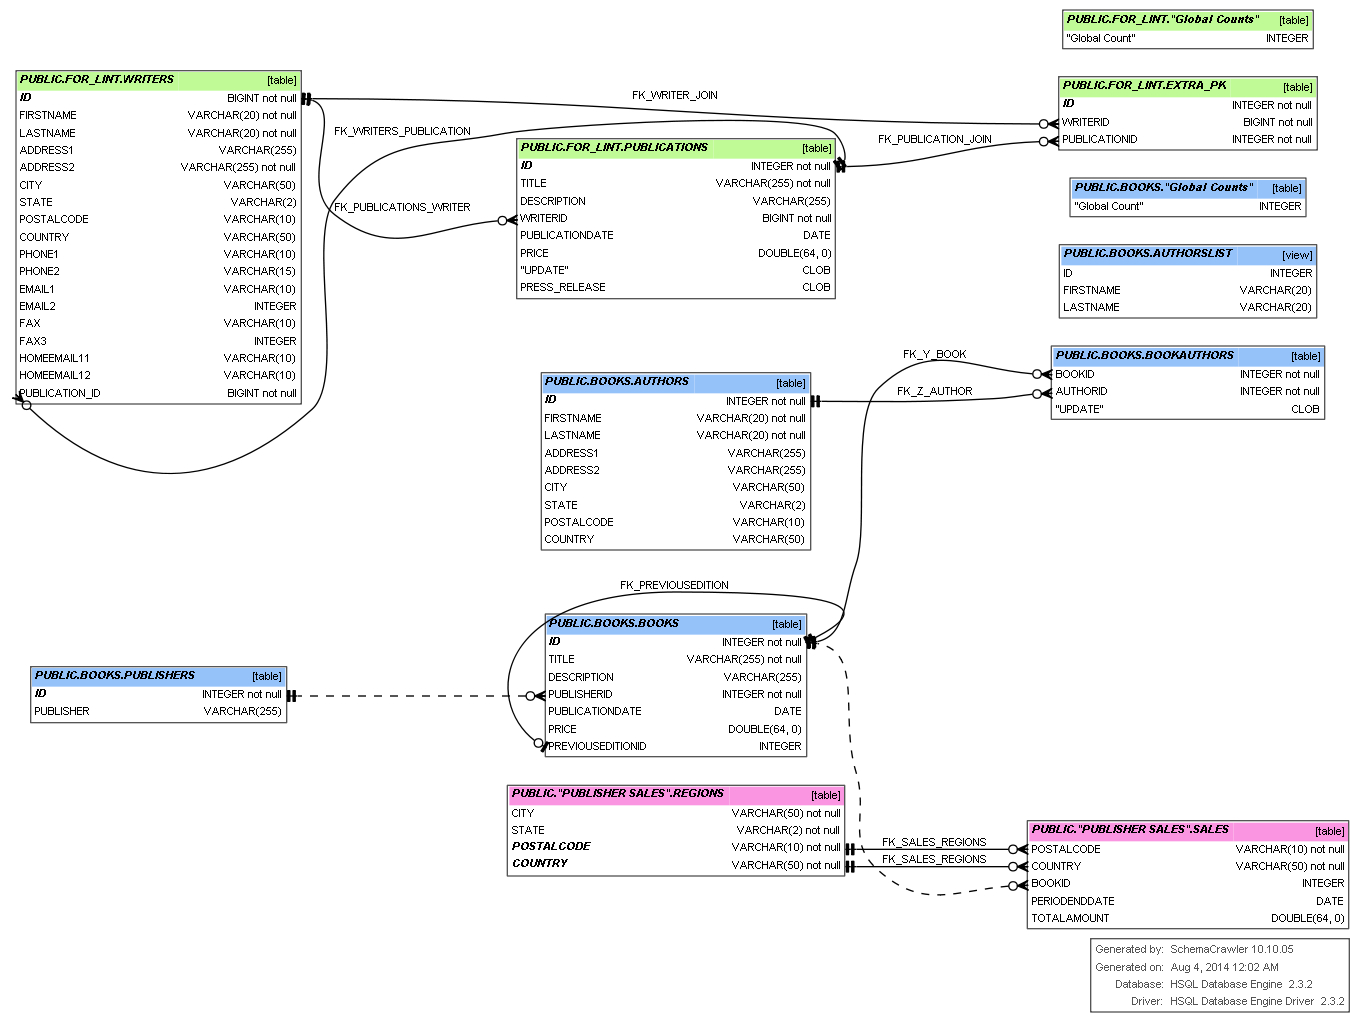 Tool To Visualize Sql Database Schema - Software intended for Sql Schema Diagram